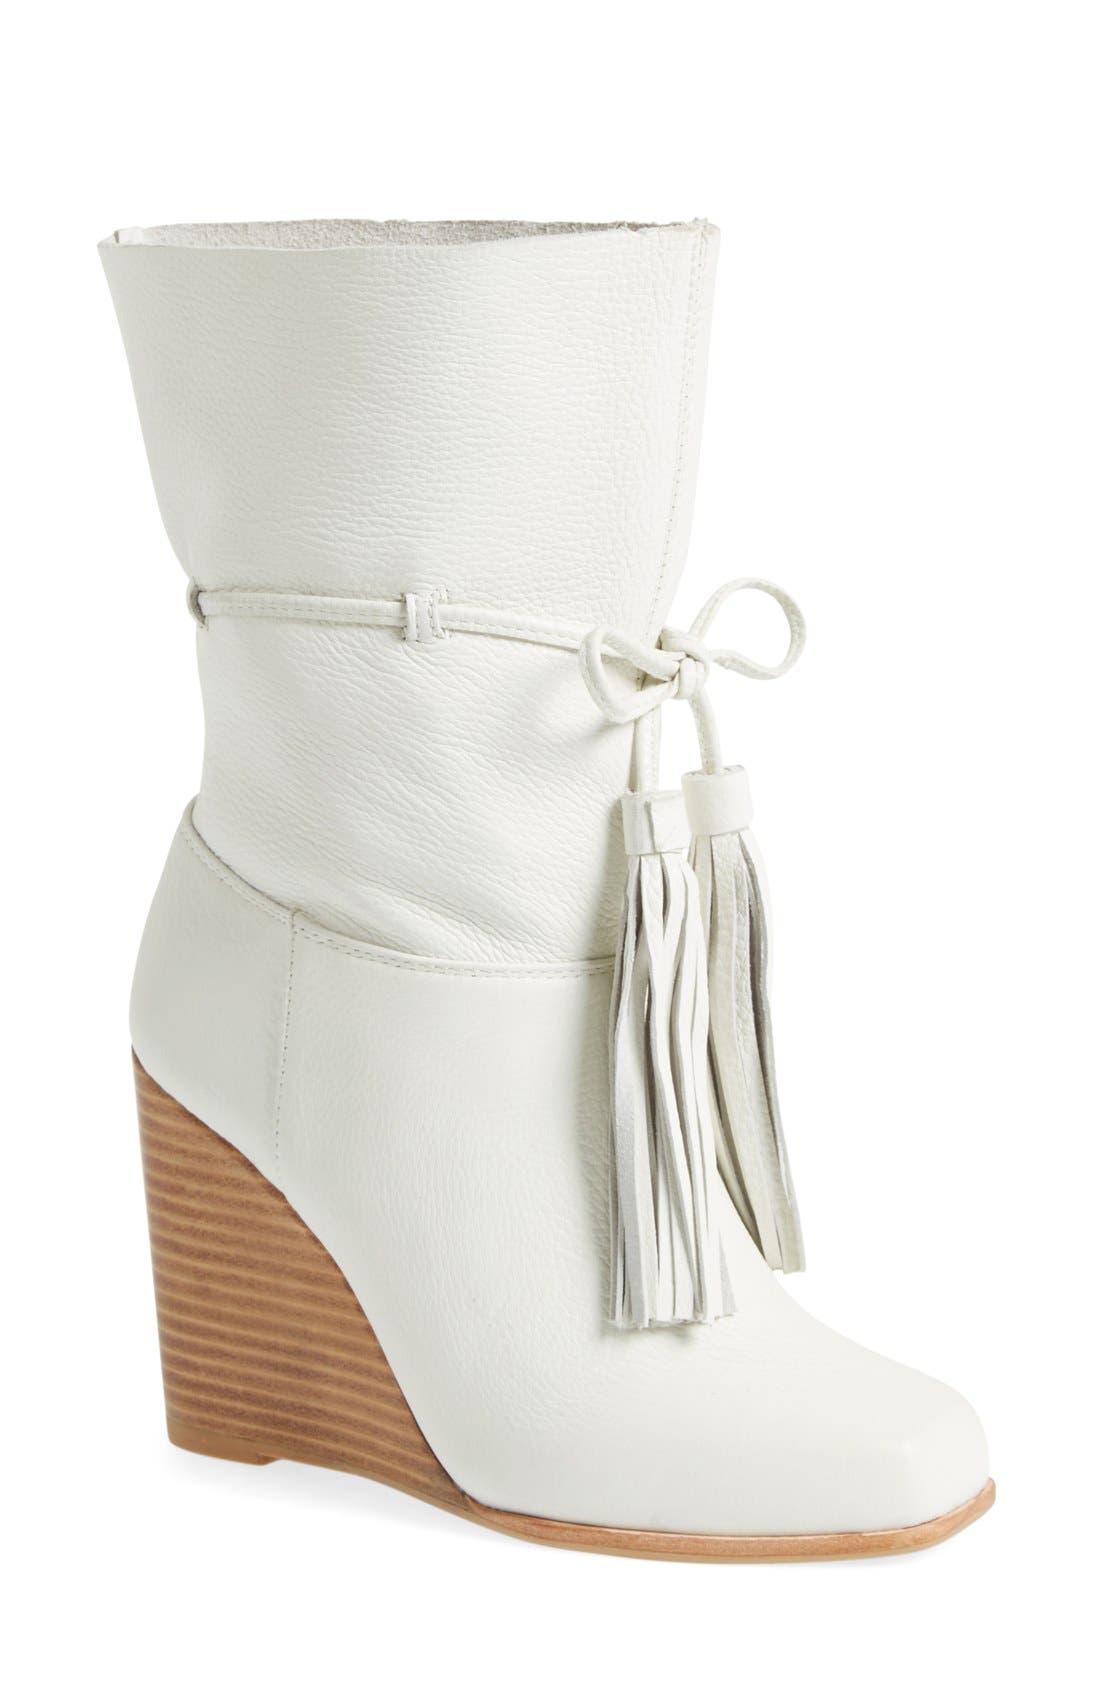 Main Image - Jeffrey Campbell 'Larusso' Wedge Tassel Boot (Women)